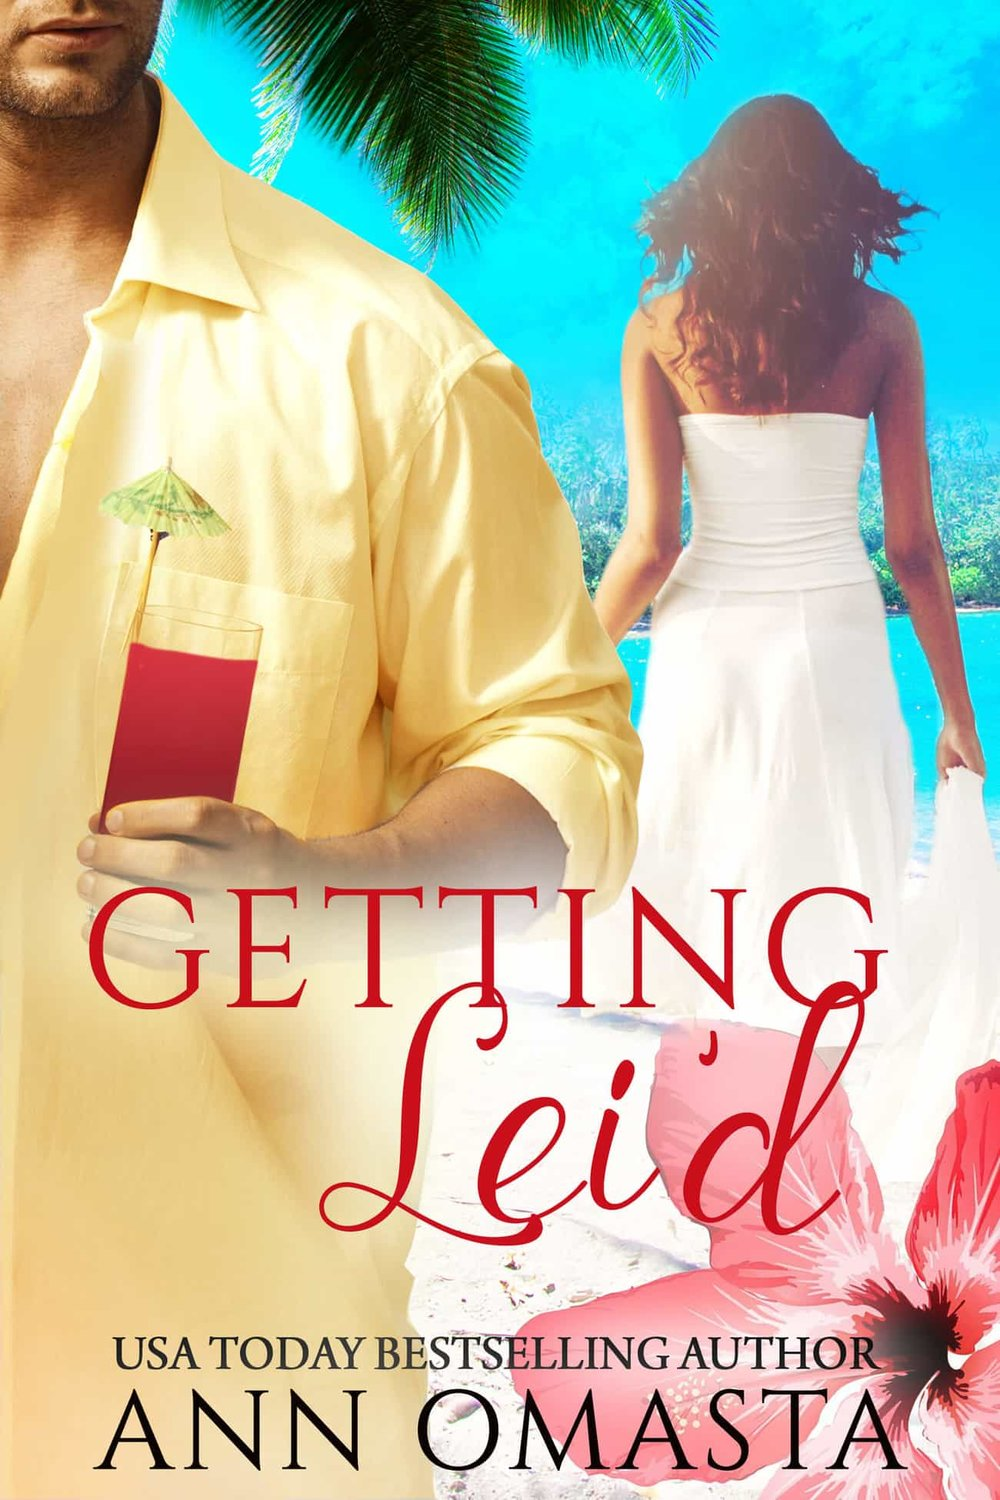 Getting Lei'd - Jilted by text message.Honeymooning with her grandma.The resort's bartender may look like Jason Momoa, but Roxy is NOT interested.**Kindle Scout Winning Book**Being jilted nearly-at-the-altar by text message is not at all how prim and proper Roxy Rose thought her wedding day would go. Getting dragged along anyway on her Hawaiian honeymoon by her self-centered sister and irreverent grandma is the icing on the horrible wedding-day cake.  Can Kai, the resort's hunky and talented chauffeur / bartender / flame-thrower, turn this disaster of a trip into a romantic adventure to last a lifetime? Or will his mysterious secrets keep their love from blossoming?  This novel is part of The Escape Series, which includes the prequel novella, Aloha, Baby!, as well as this book's sequel, Cruising for Love, and the sweet short story, Coconutty Christmas. You can read and enjoy these books in any order!Escape with Roxy into the enchanting Hawaiian Islands as she finally discovers the joys of hanging loose and